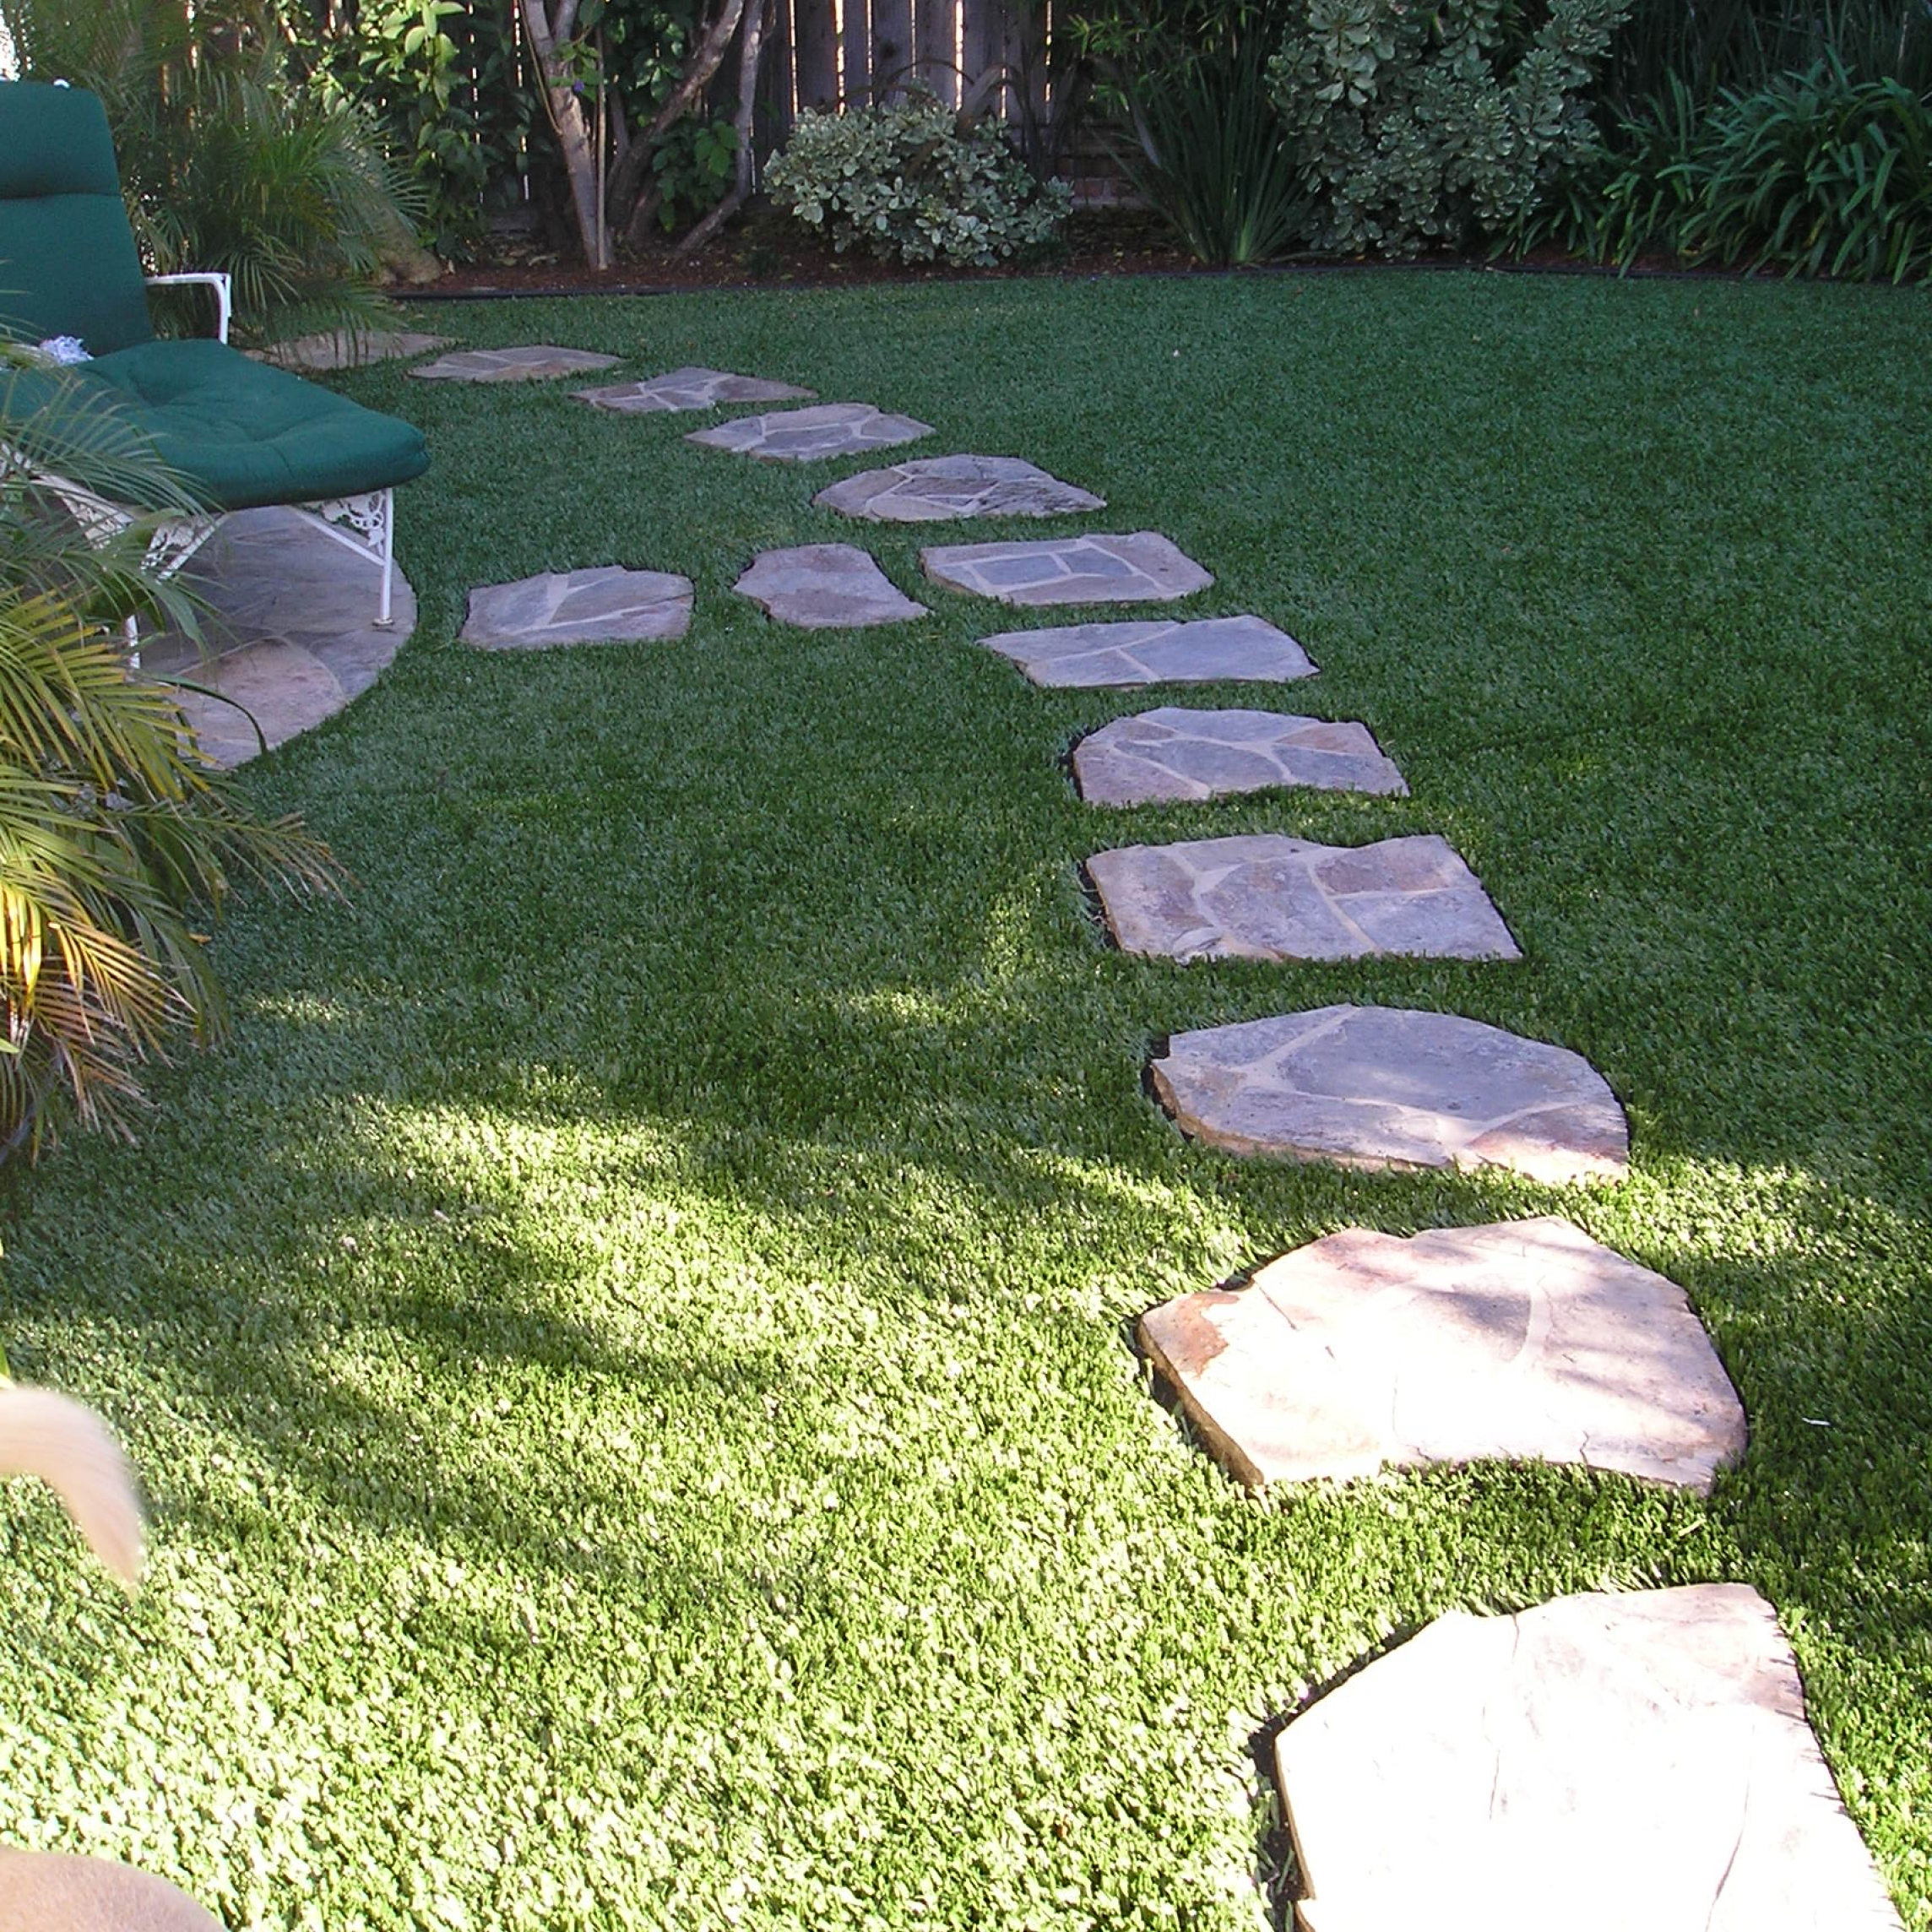 Full Recycle-60 pet friendly artificial grass